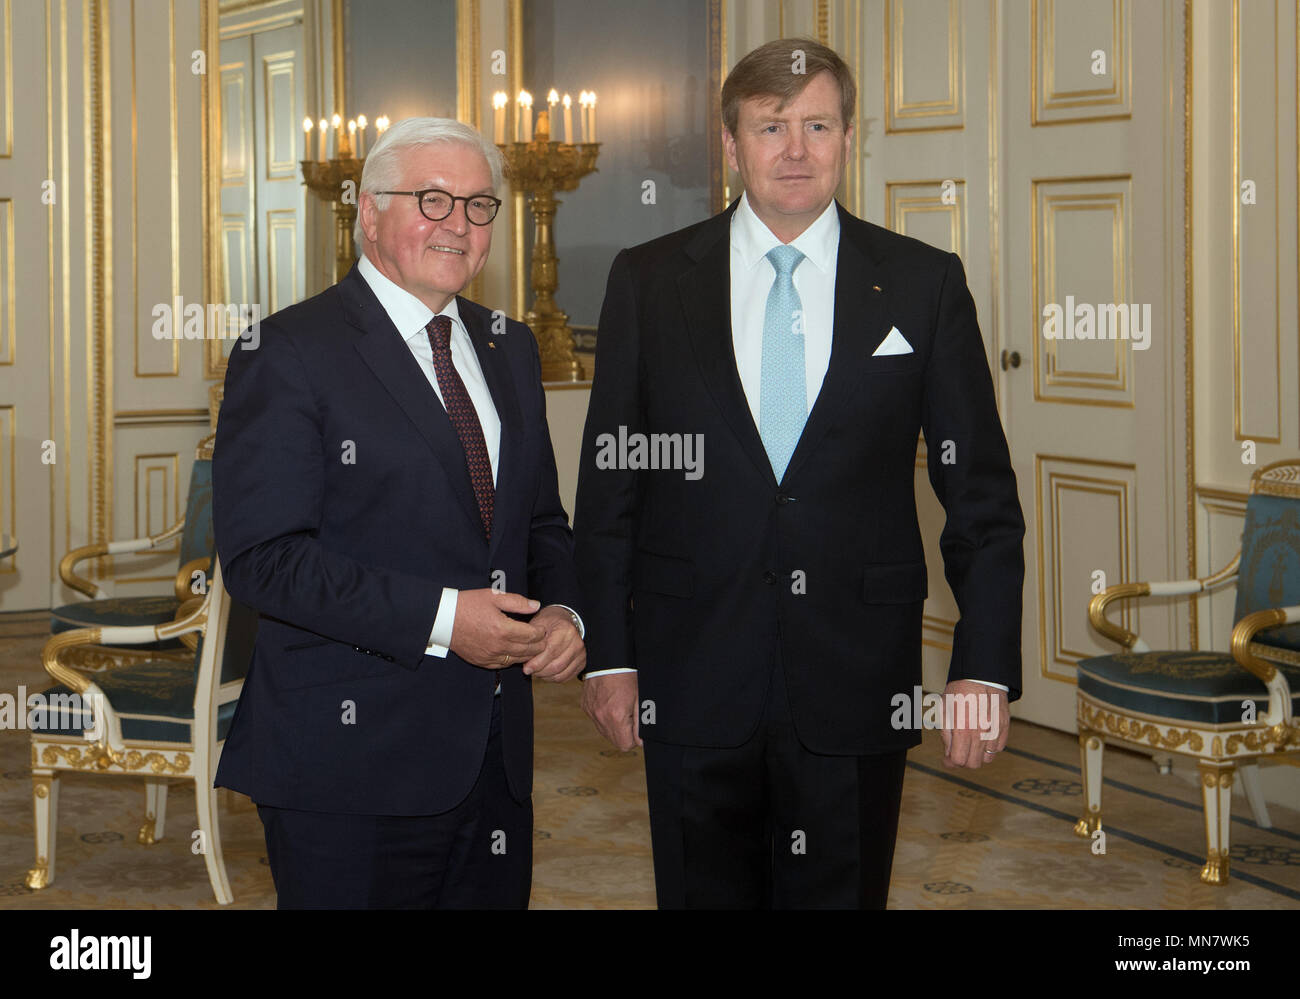 Amsterdam, The Netherlands. 15th May, 2018. German President Frank-Walter Steinmeier (L) is greeted by the King of the Netherlands, King Willem-Alexander, in the Palace. Photo: Soeren Stache/dpa Credit: dpa picture alliance/Alamy Live News Stock Photo